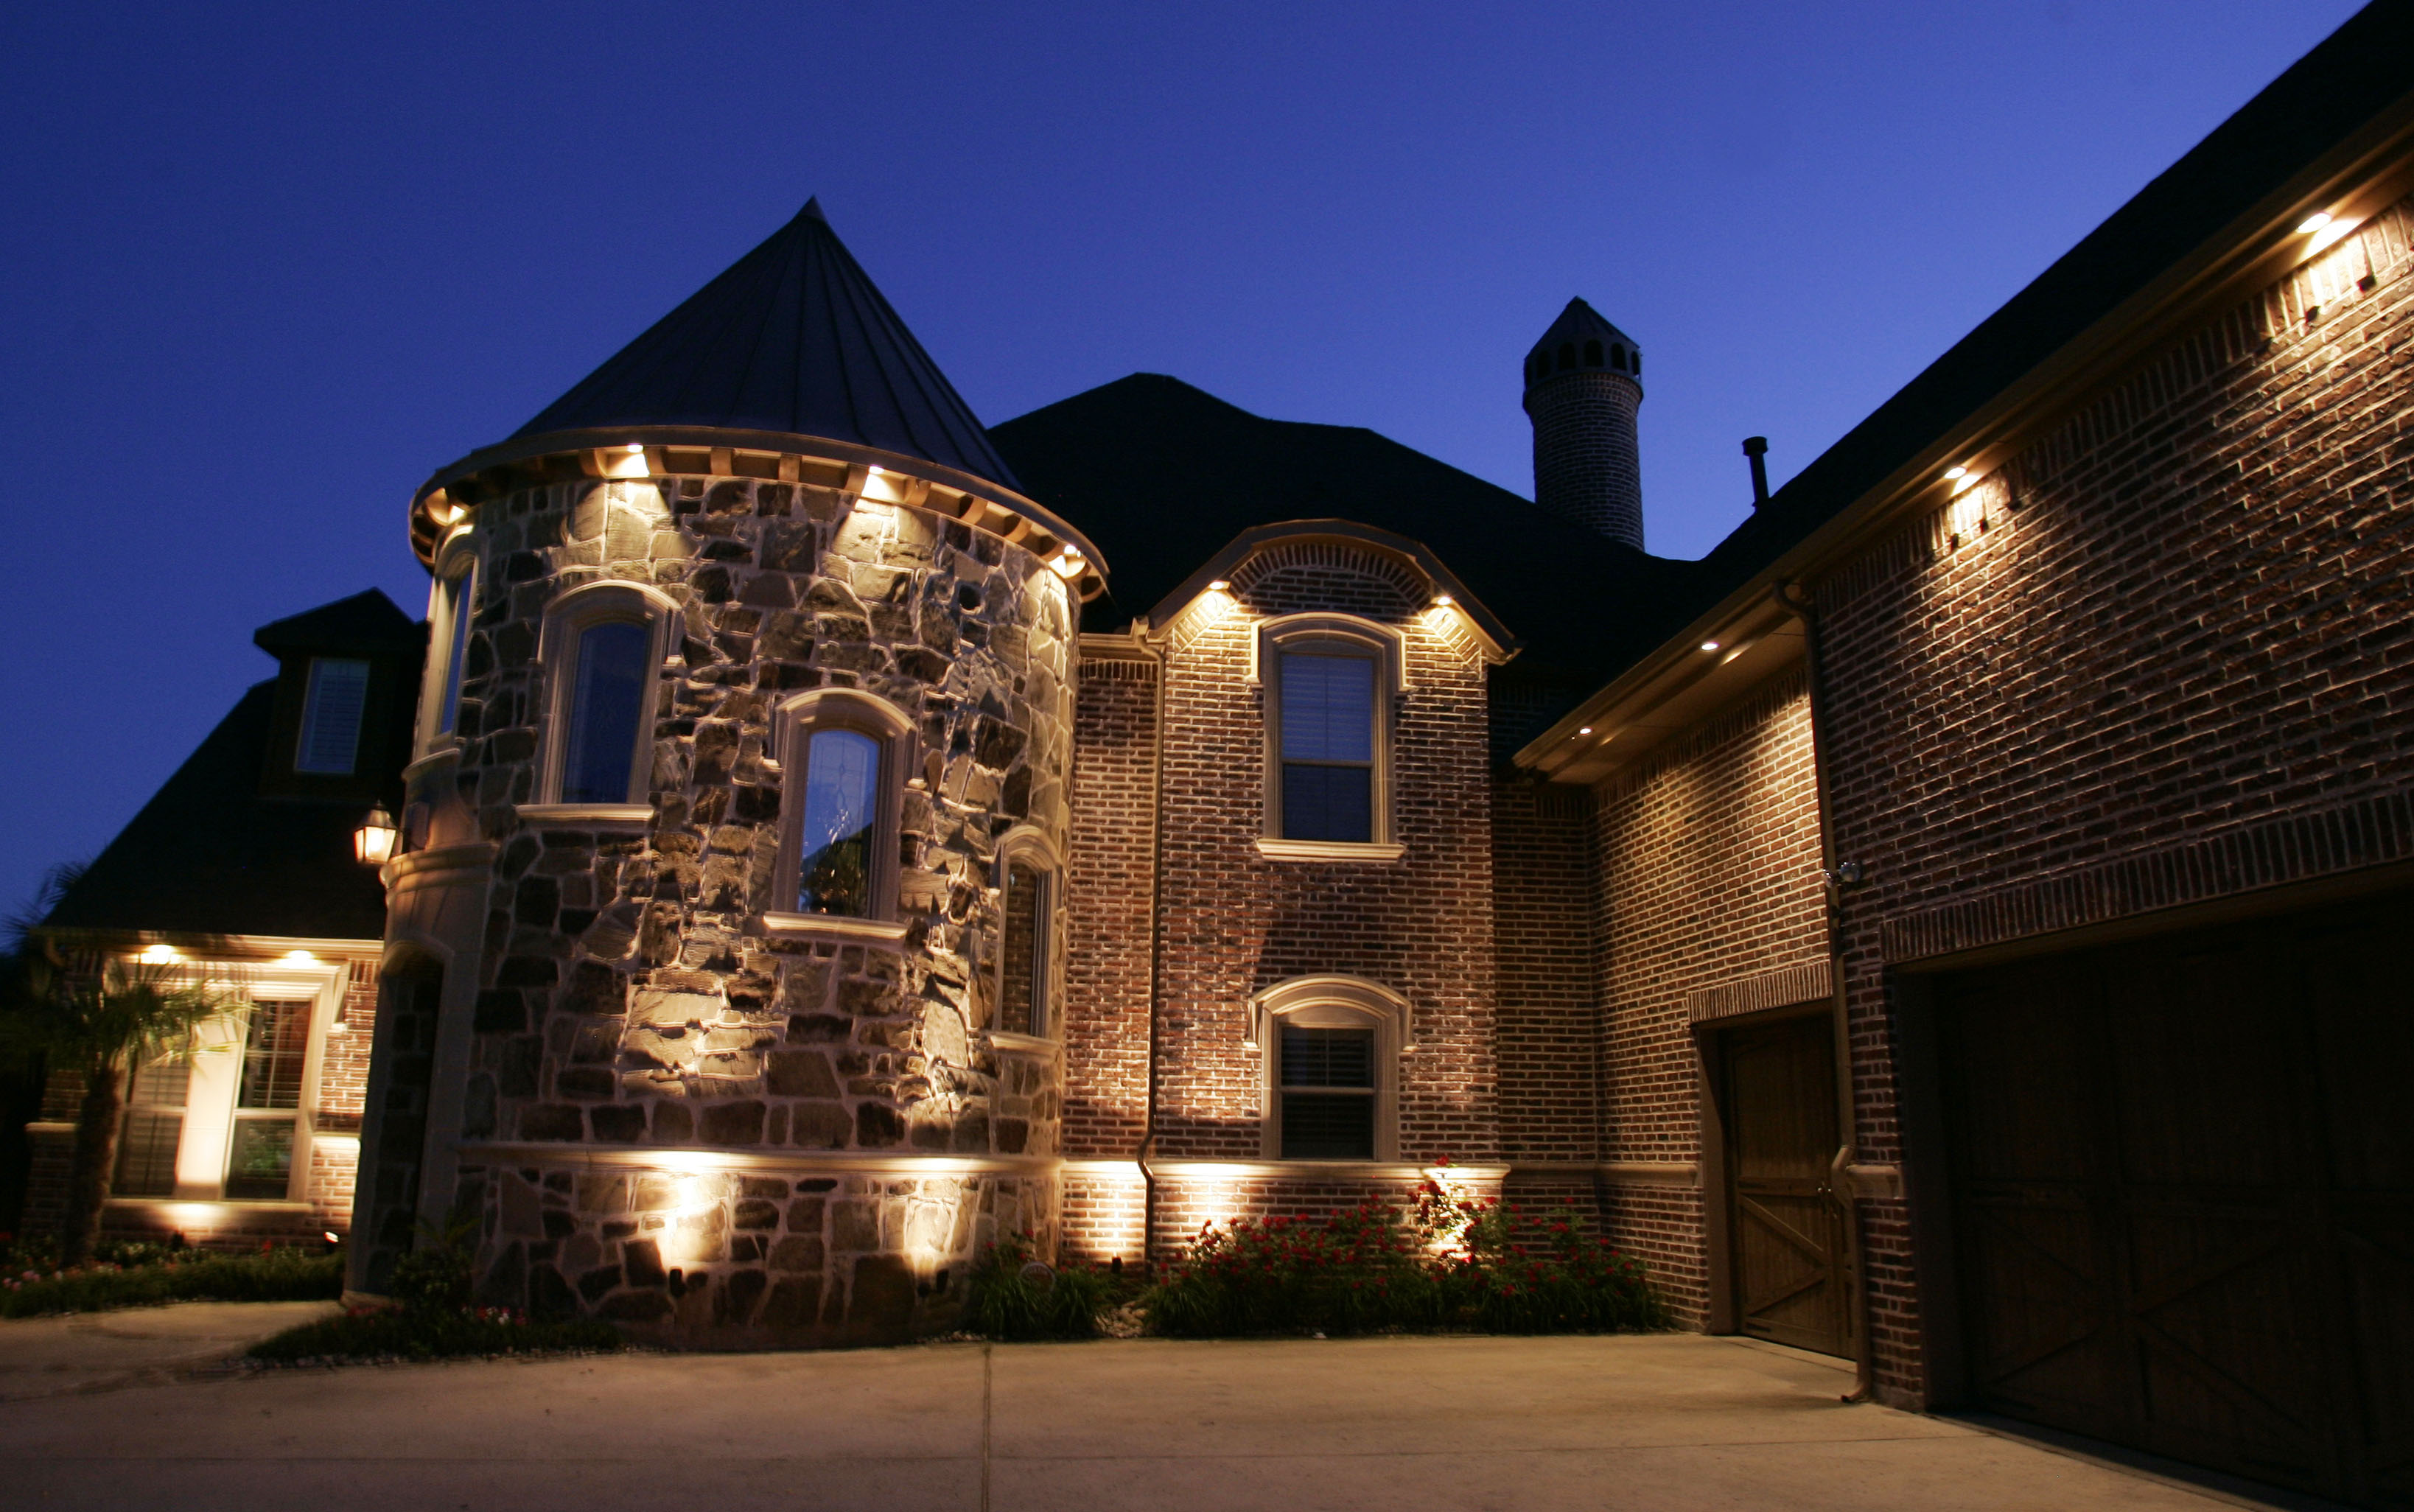 Plano Outdoor Lighting Dallas Landscape